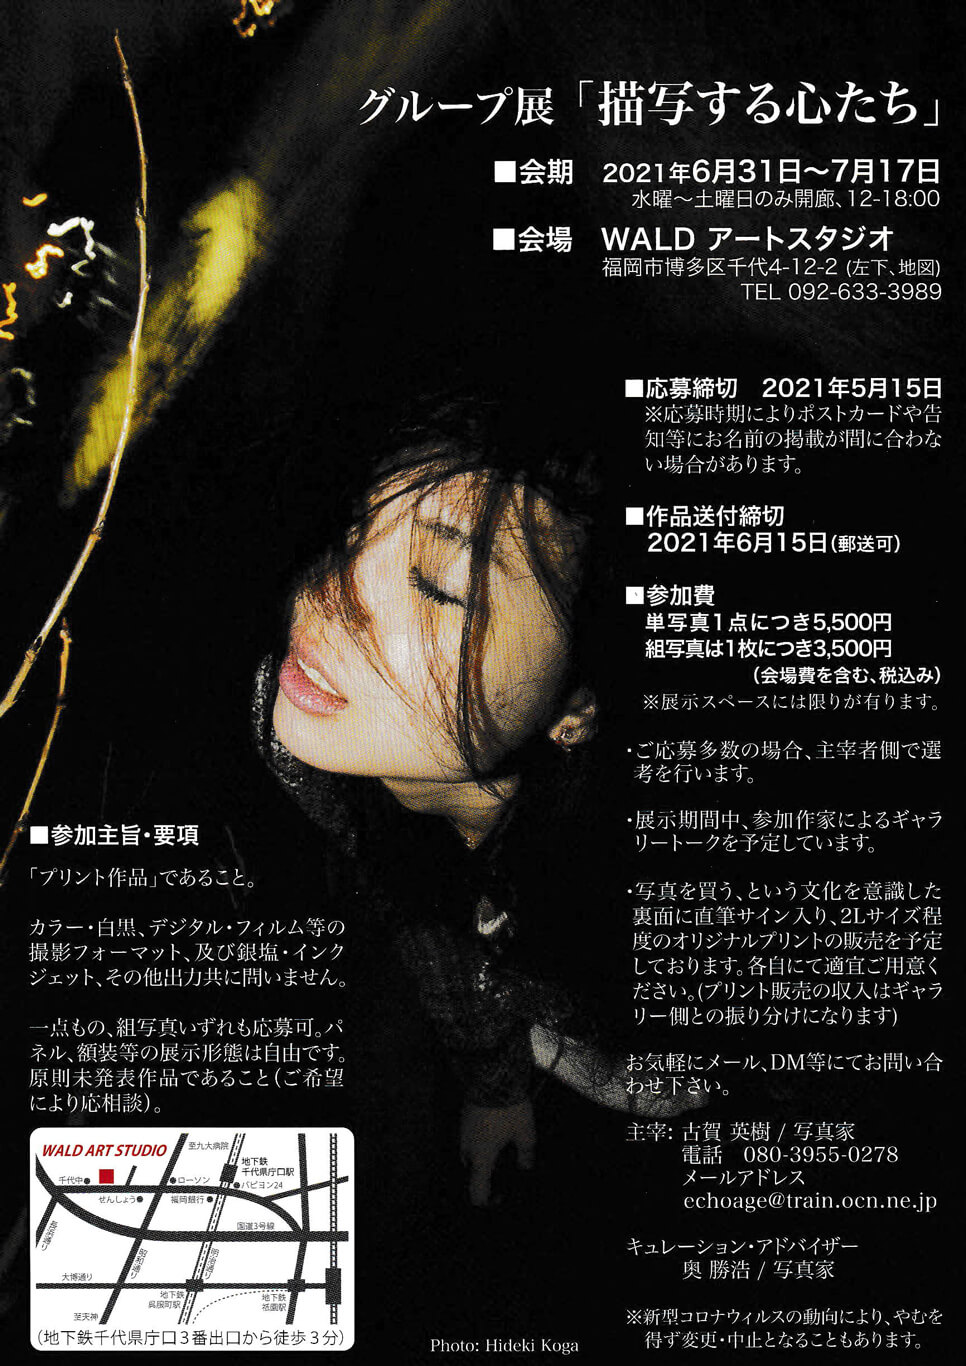 wold-202106-グループ展